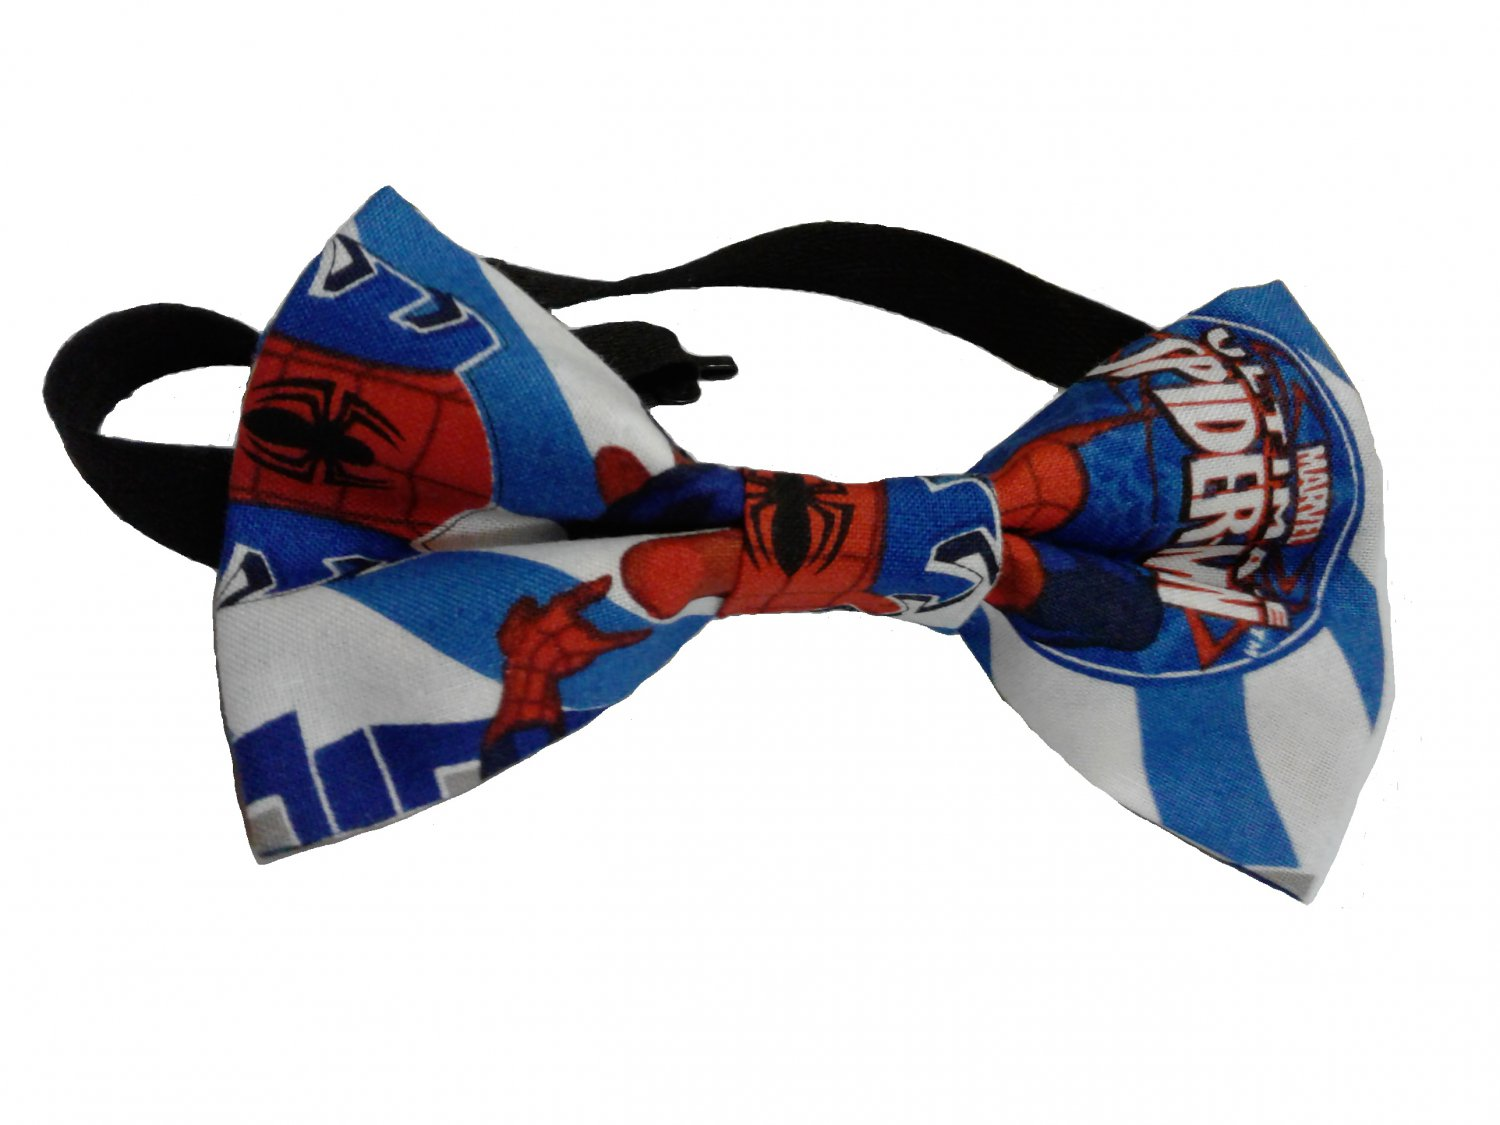 Spiderman Pretied Bow Tie Cotton, Ages 6 to 12, Adjustable to 16 Inches